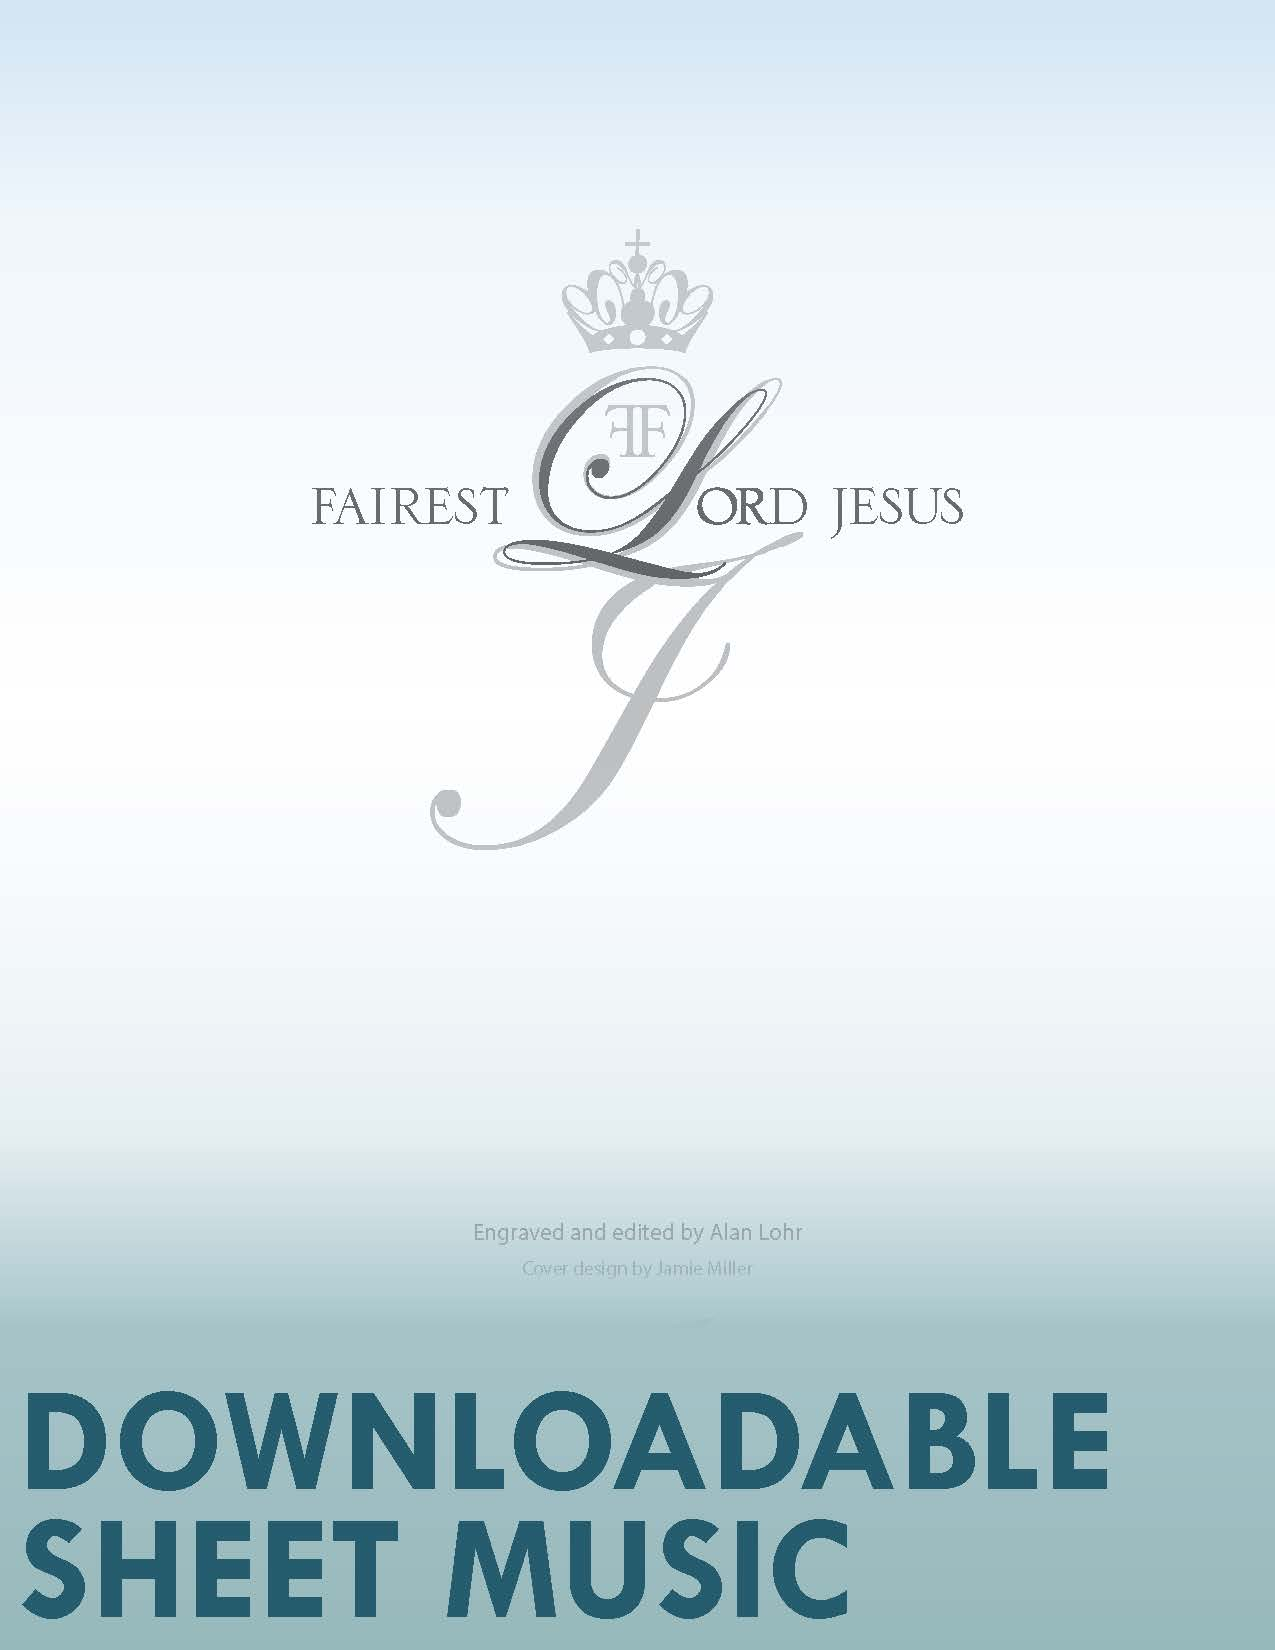 Fairest Lord Jesus - Digital Download